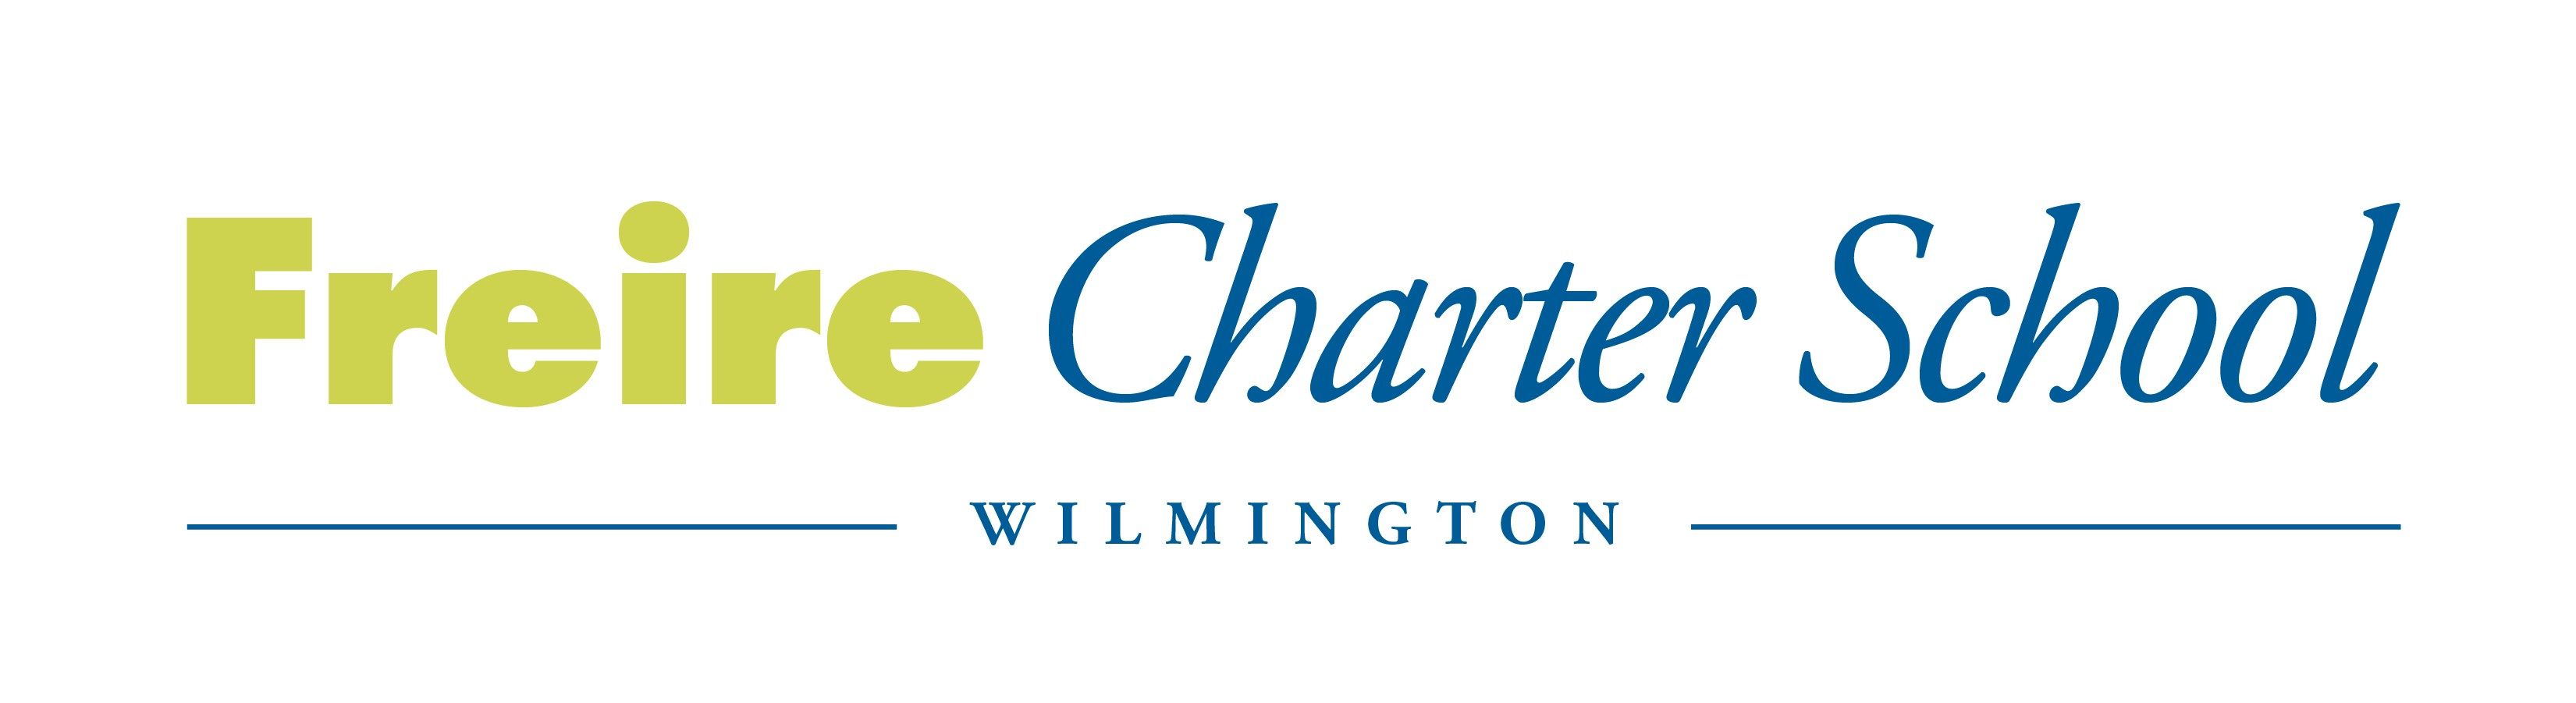 Charter School Wilmington Logo